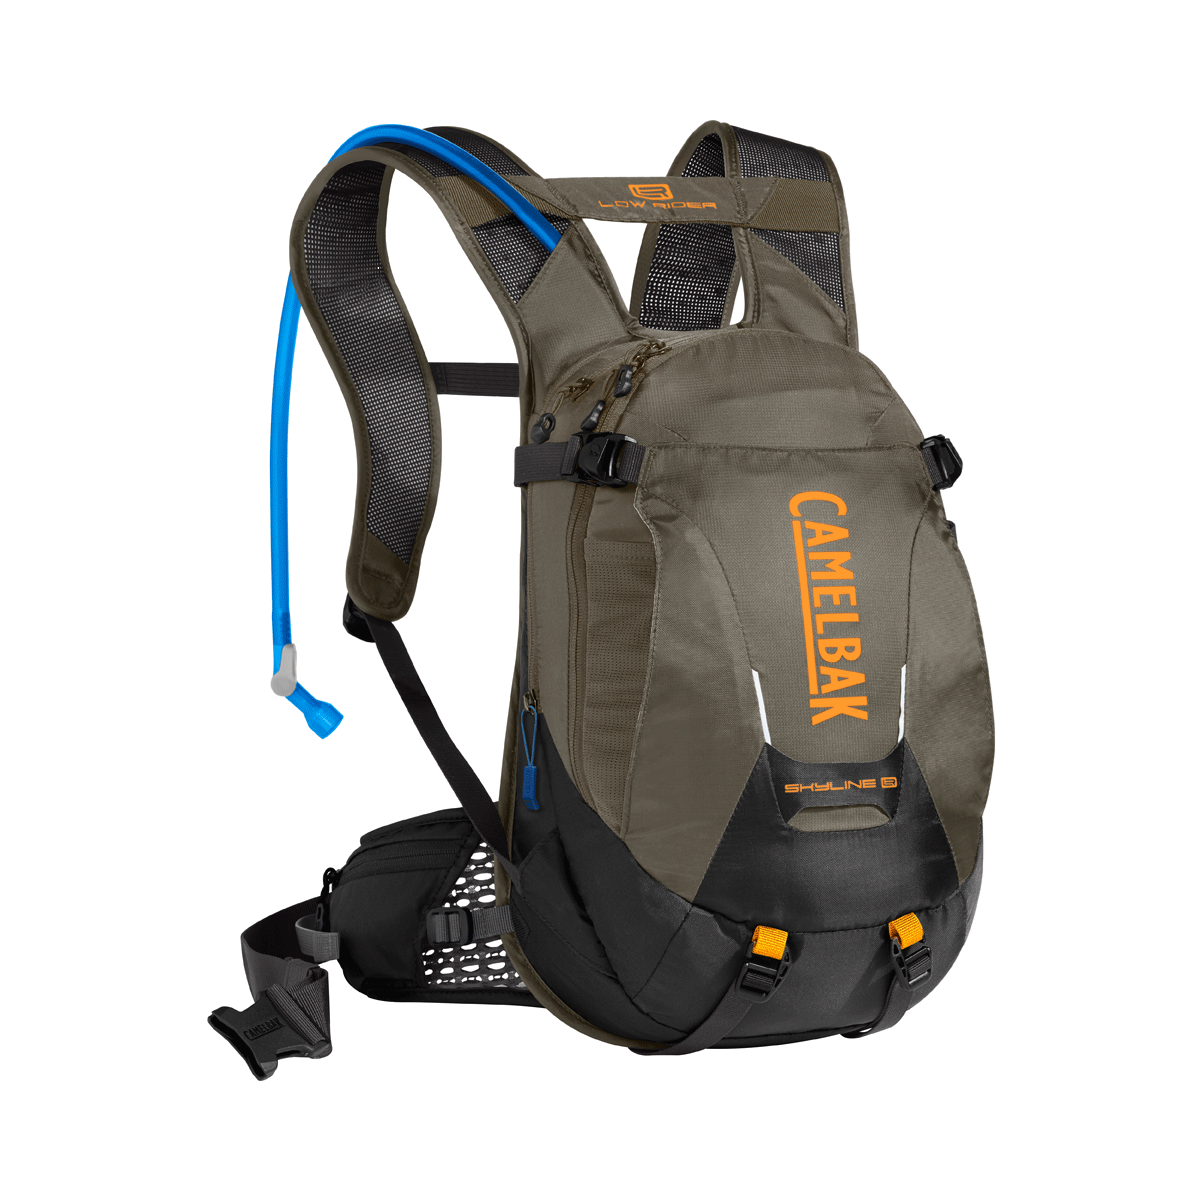 Camelbak Accessories > Bags & Seatpacks Grey / Black Camelbak Skyline LR10 (2019)